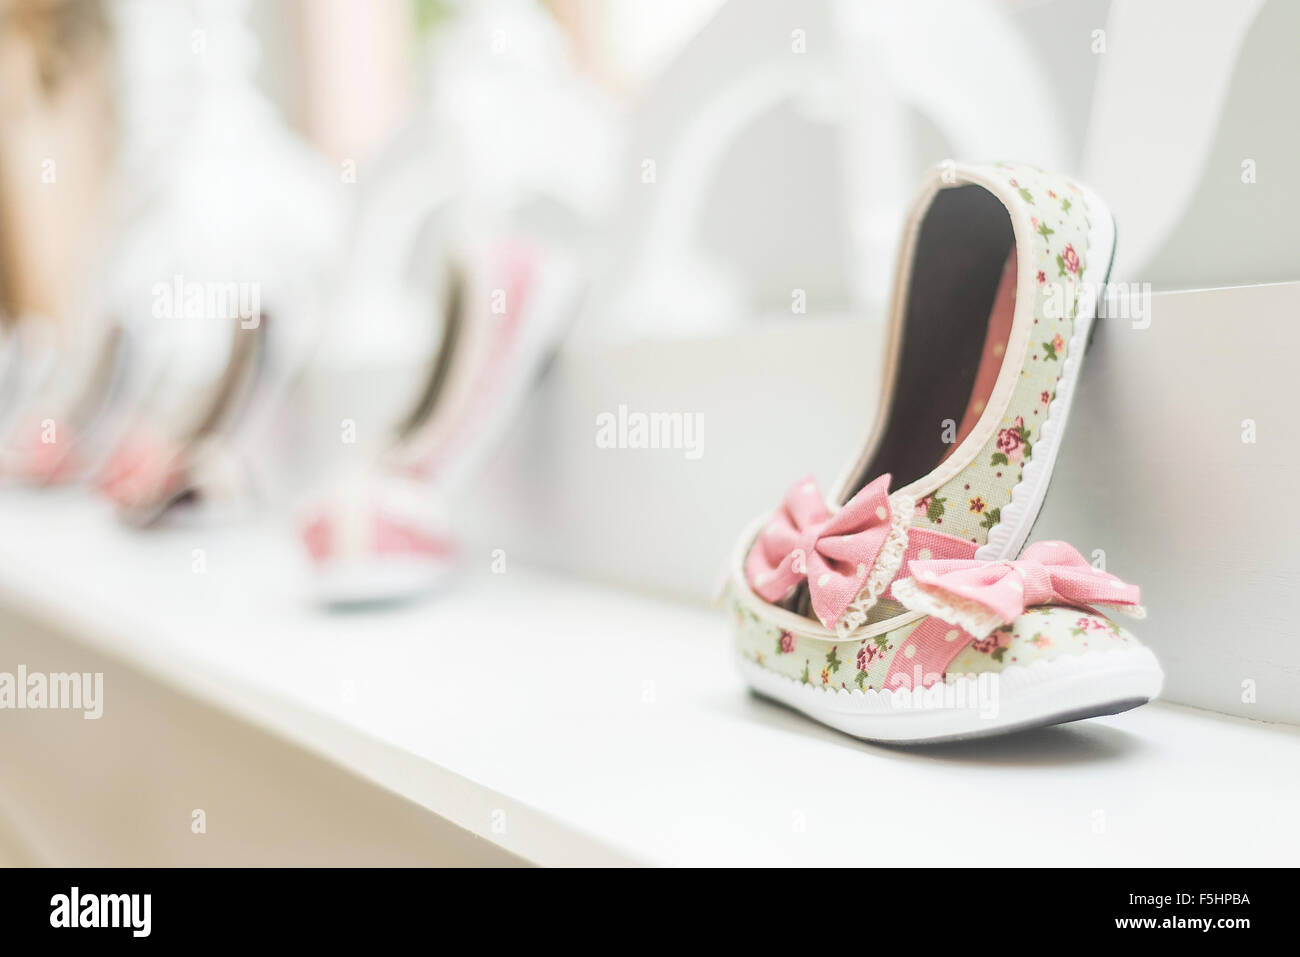 young girl's shoes in children's footwear fashion shop display - Stock Image